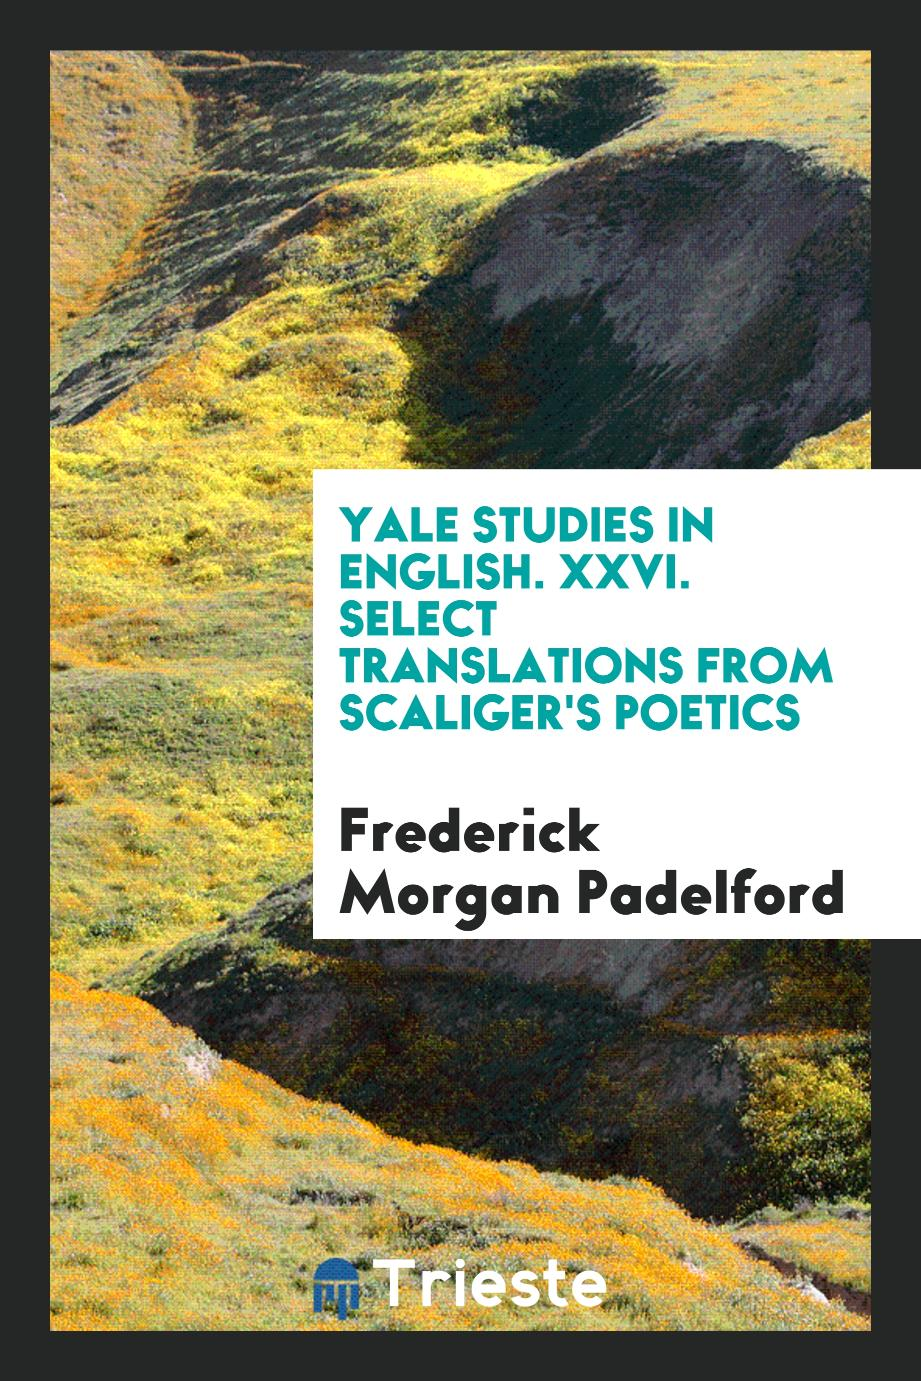 Yale Studies in English. XXVI. Select Translations from Scaliger's Poetics